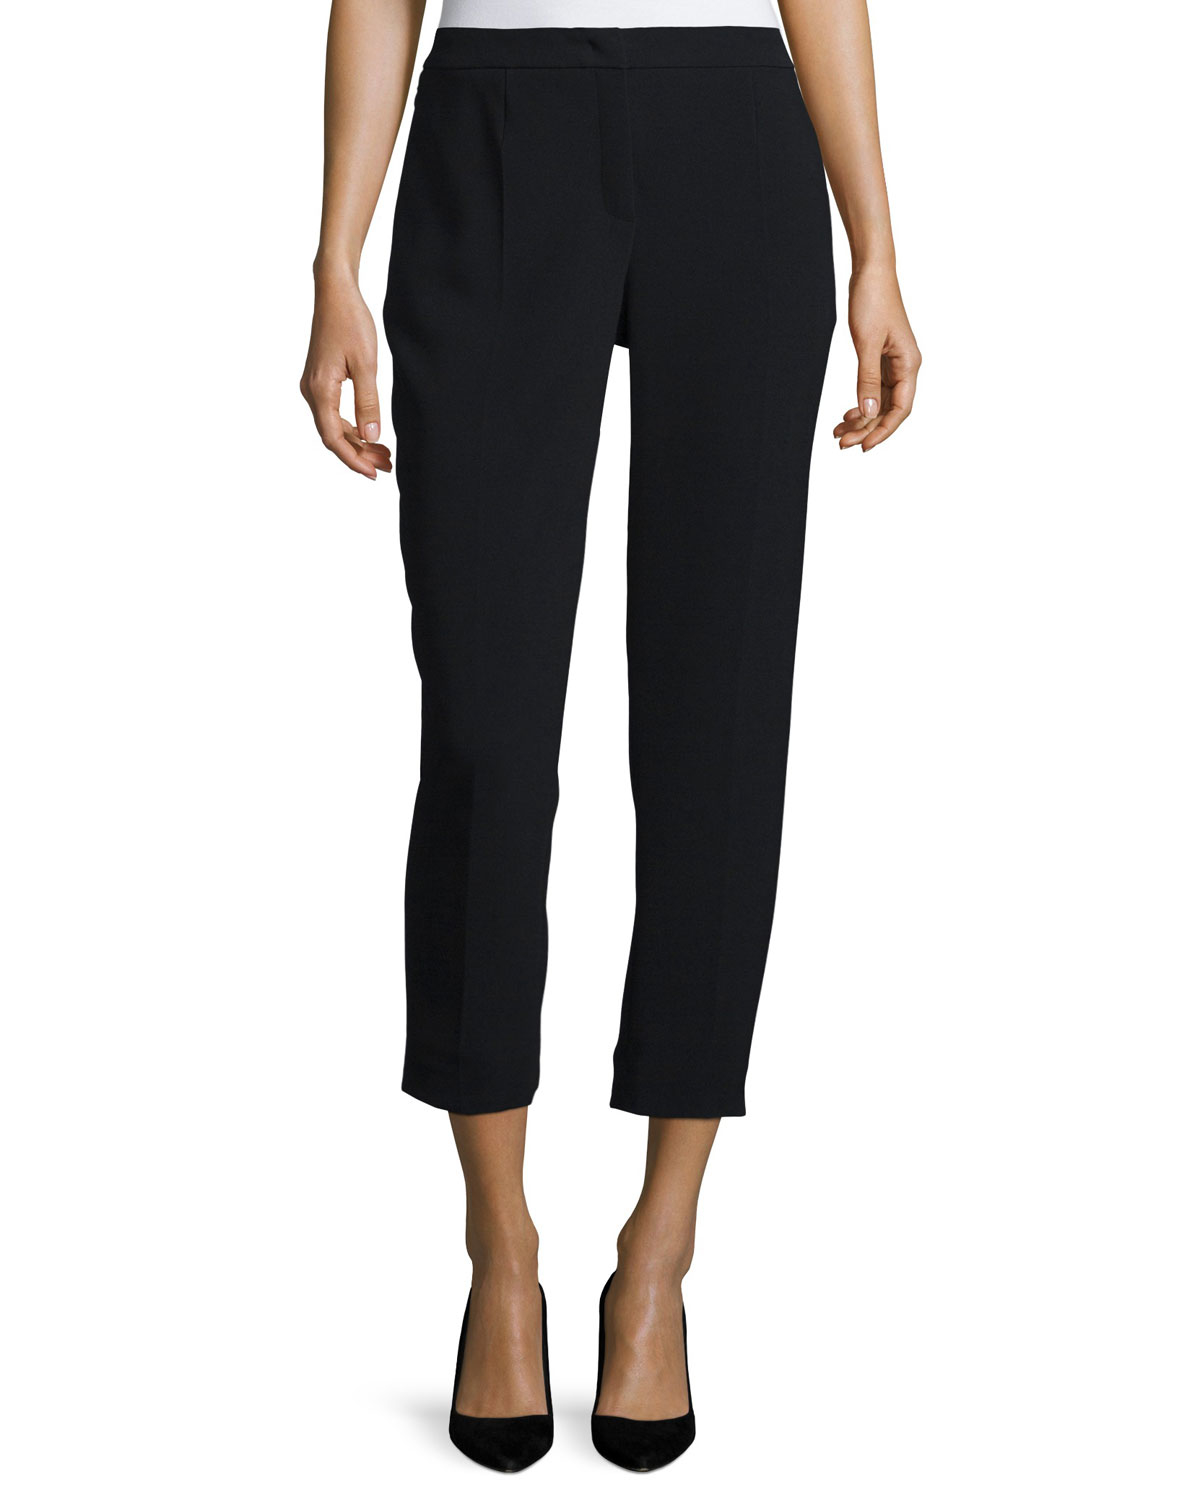 Amazing Pleated Front WWB Pants  Eva Varro Women39s Clothing And Apparel